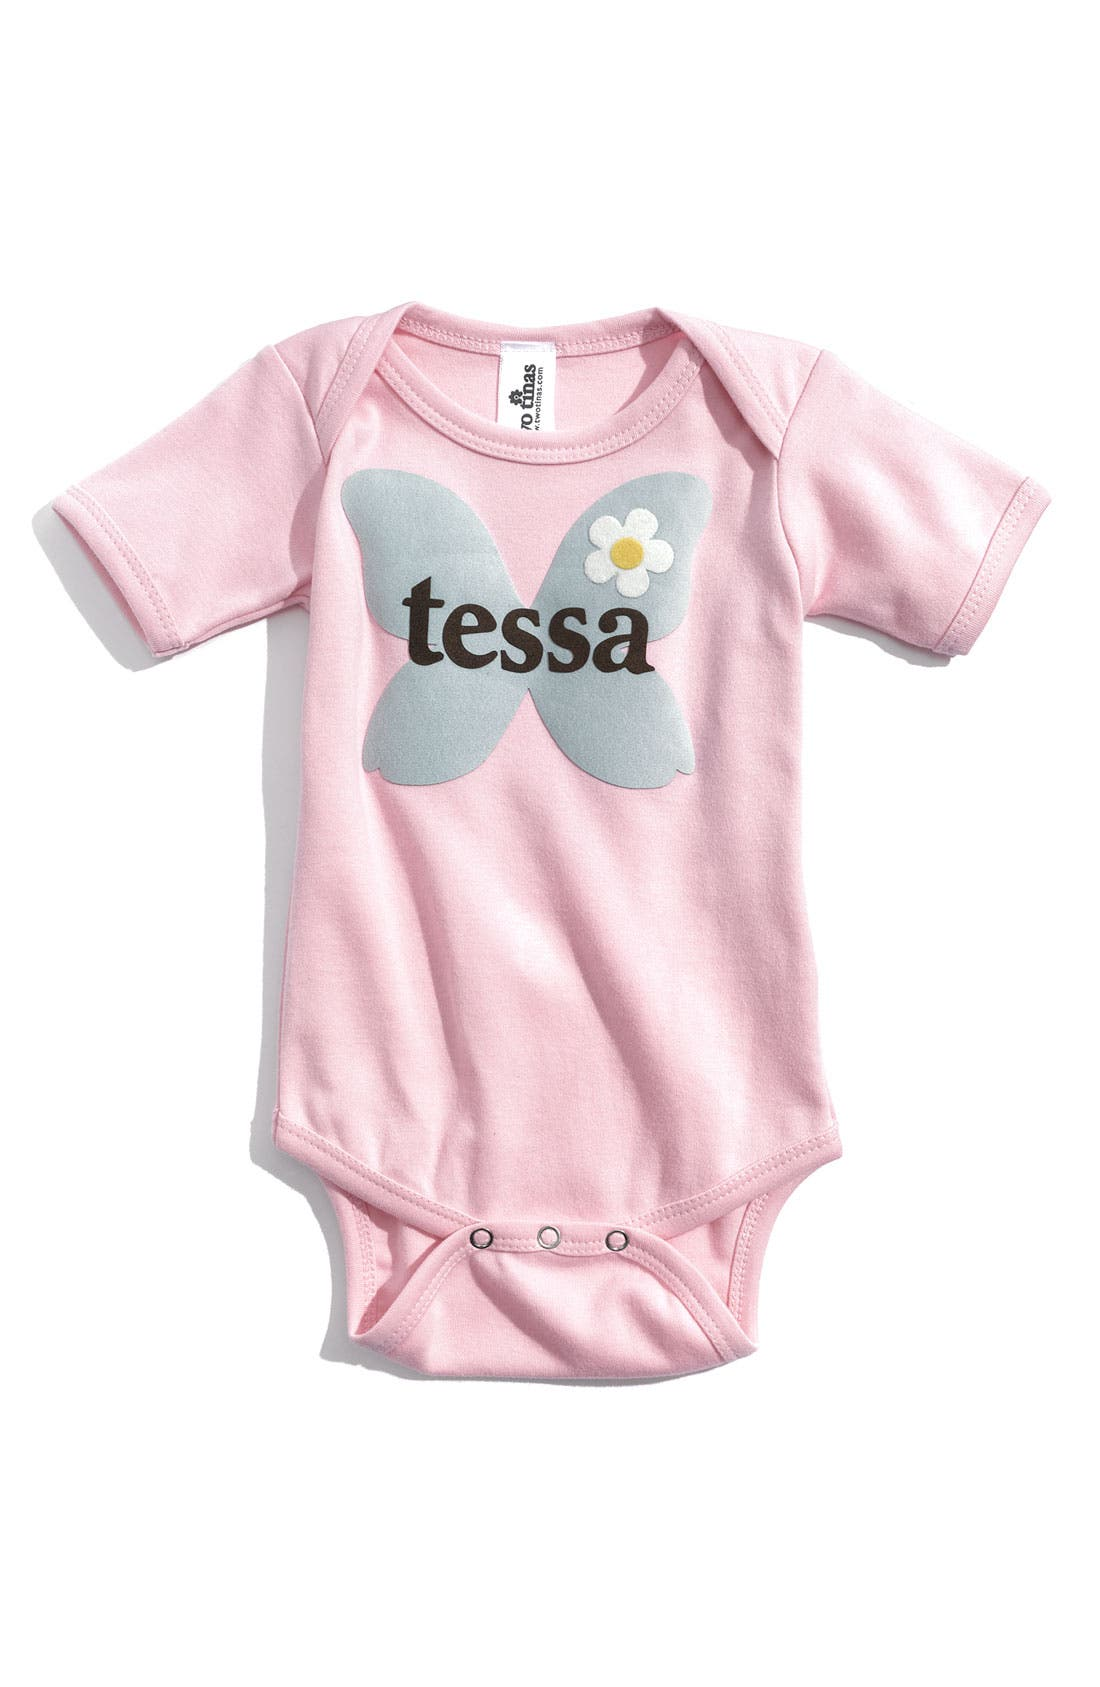 Alternate Image 1 Selected - Two Tinas 'Little Friends' Personalized Bodysuit (Baby)